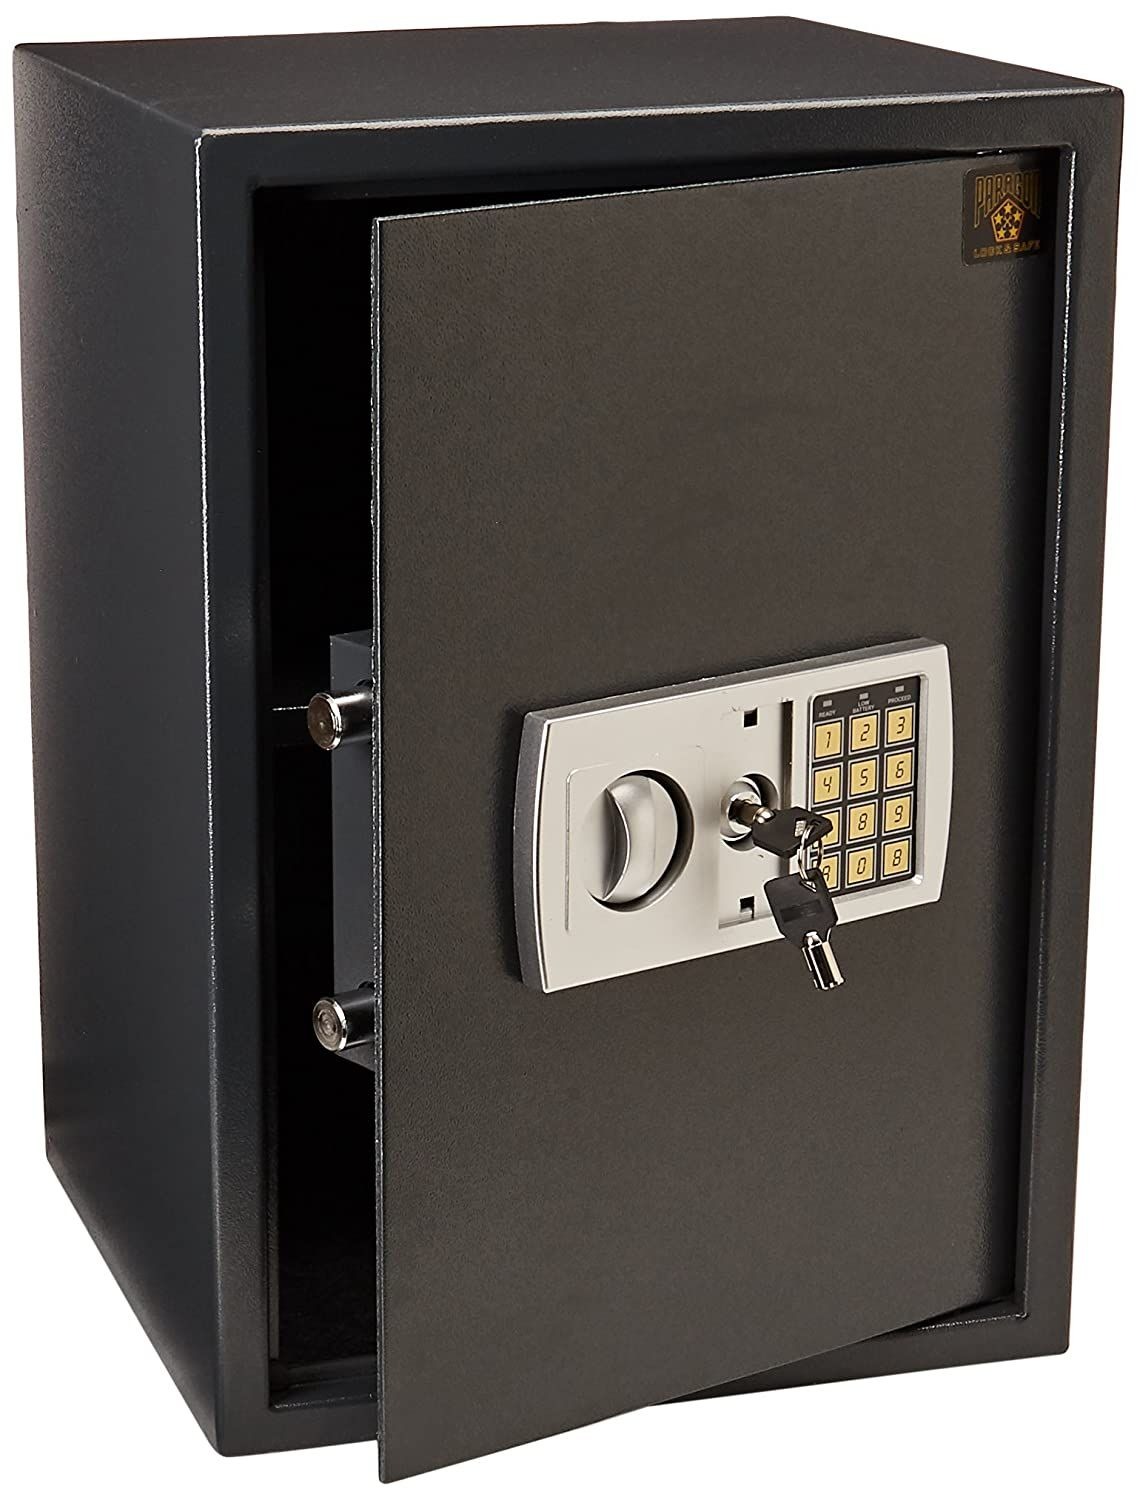 7775 1.8 CF Large Electronic Digital Safe Jewelry Home Secure Paragon Lock & Safe